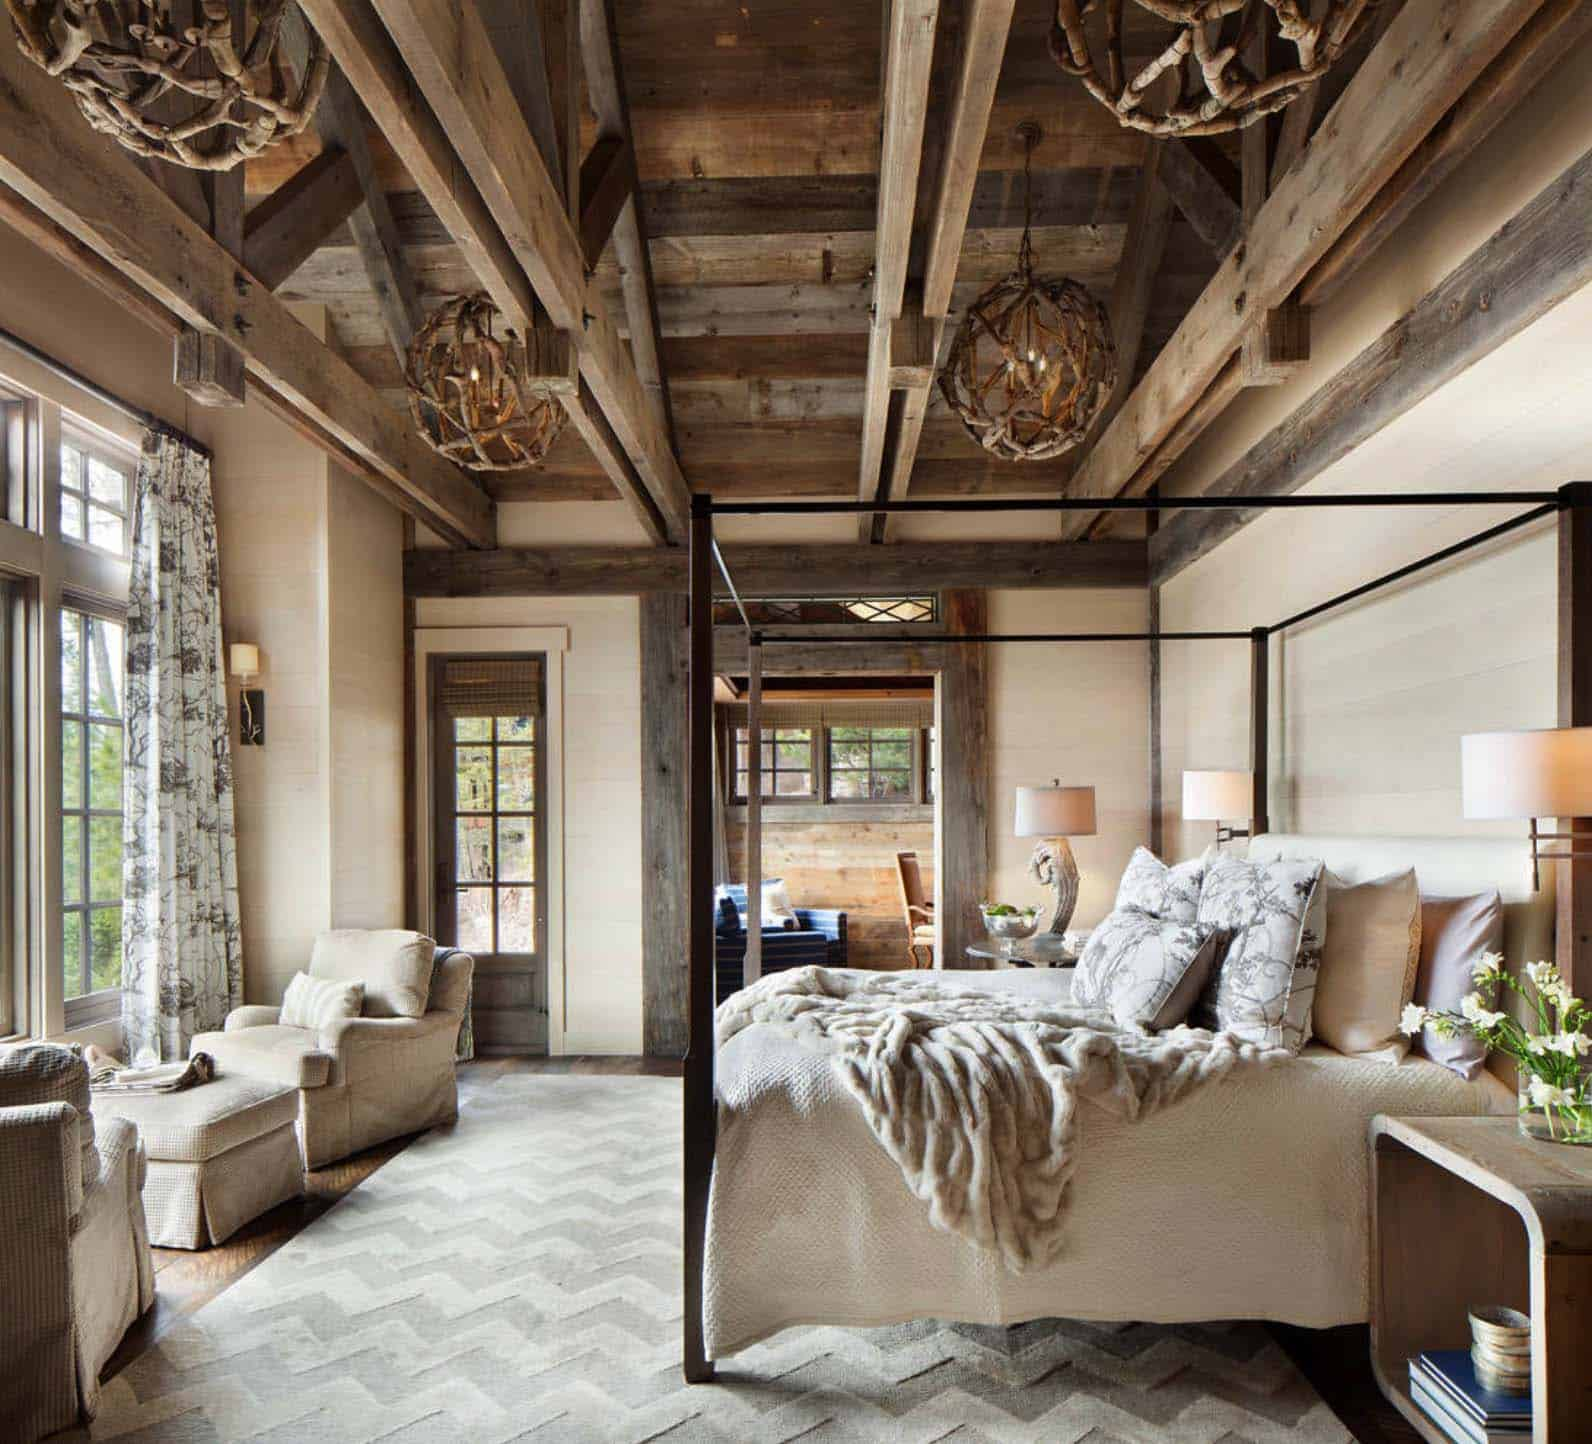 Amazing Cozy-Rustic Bedrooms-11-1 Kindesign